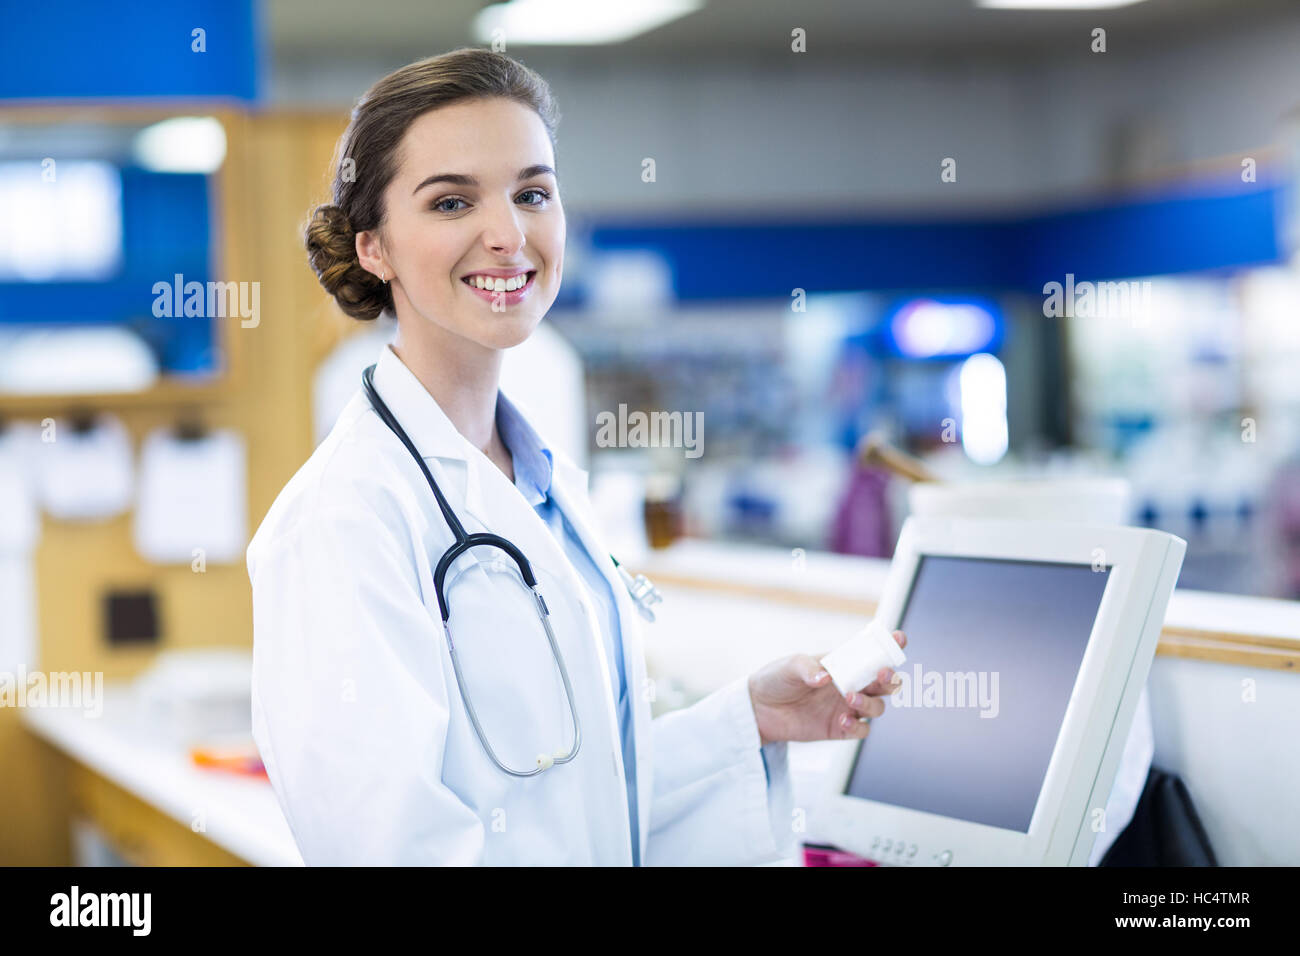 Smiling pharmacist holding medicine container in pharmacy - Stock Image